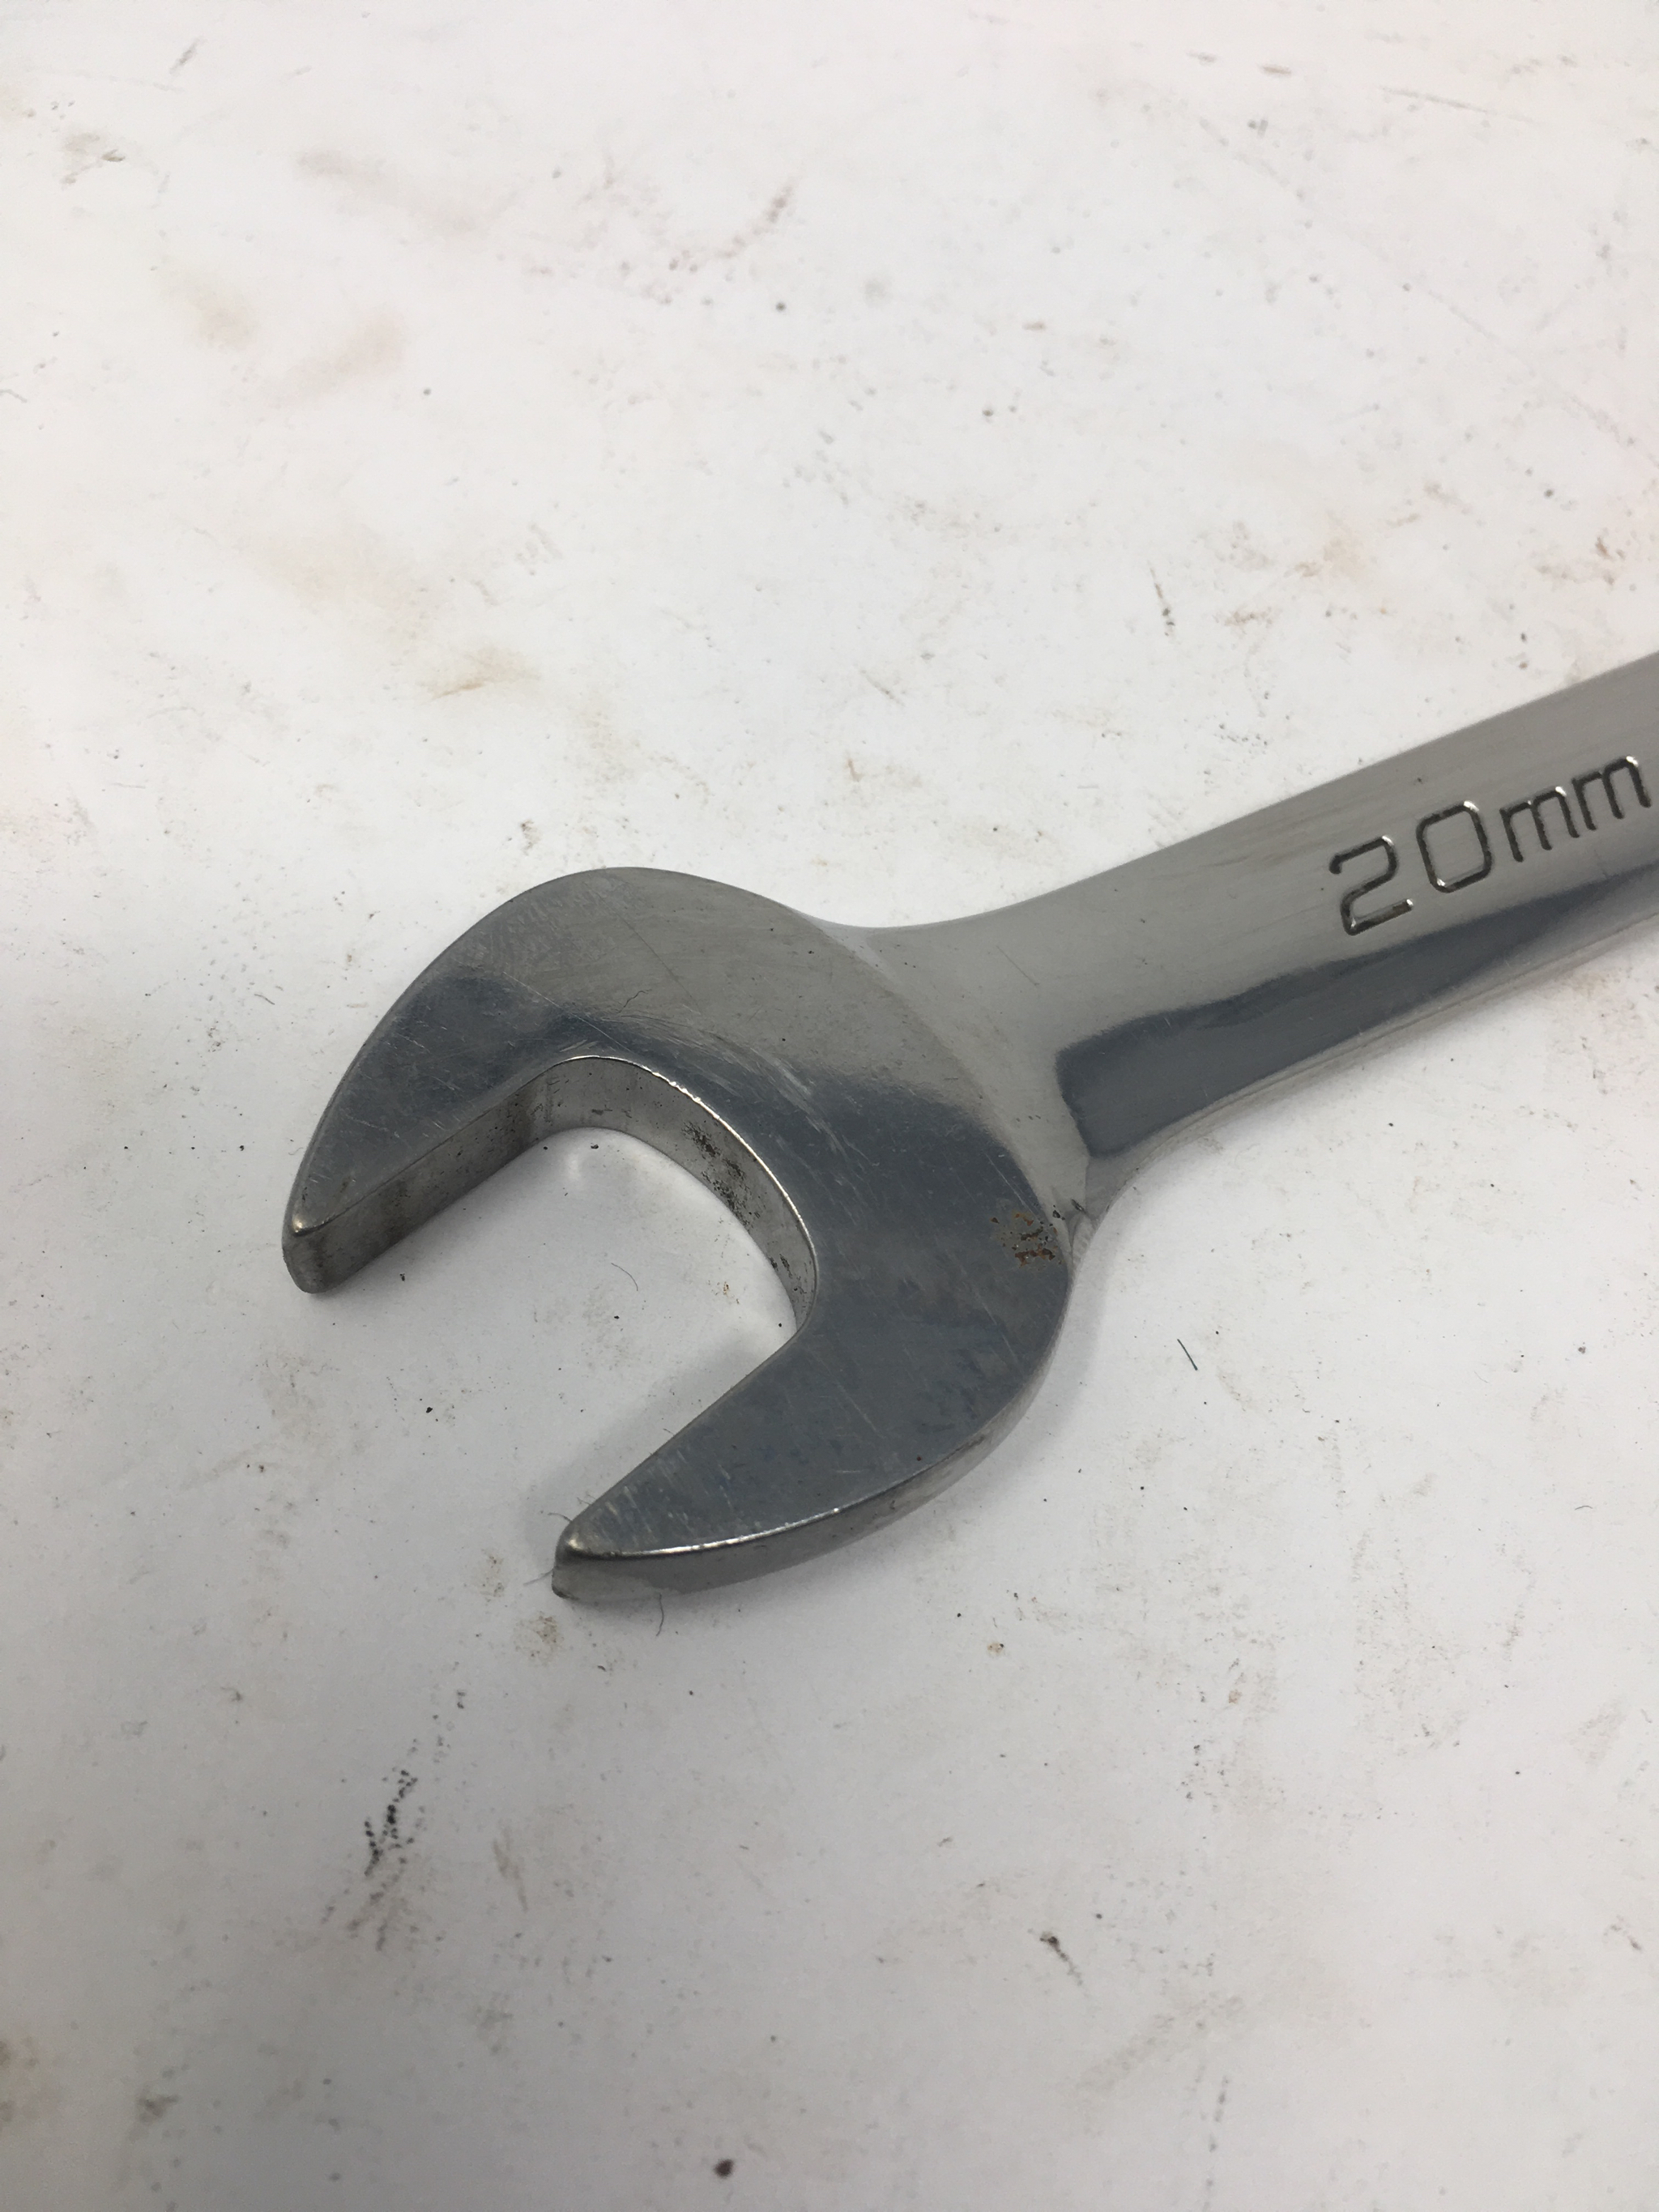 New Snap On OEXM200B 20mm 12 Point Open End Wrench